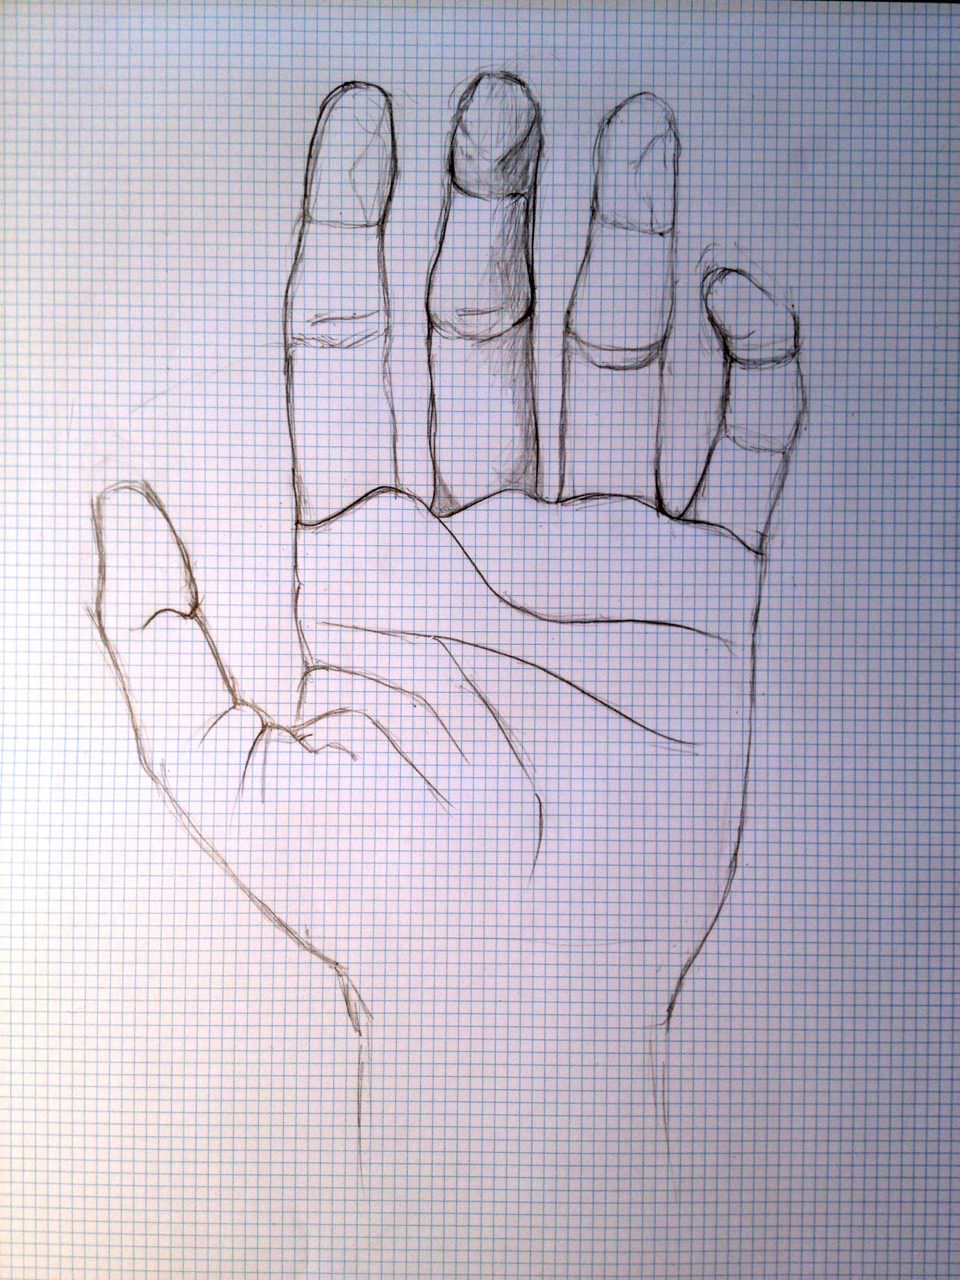 hand drawing, concept sketching.